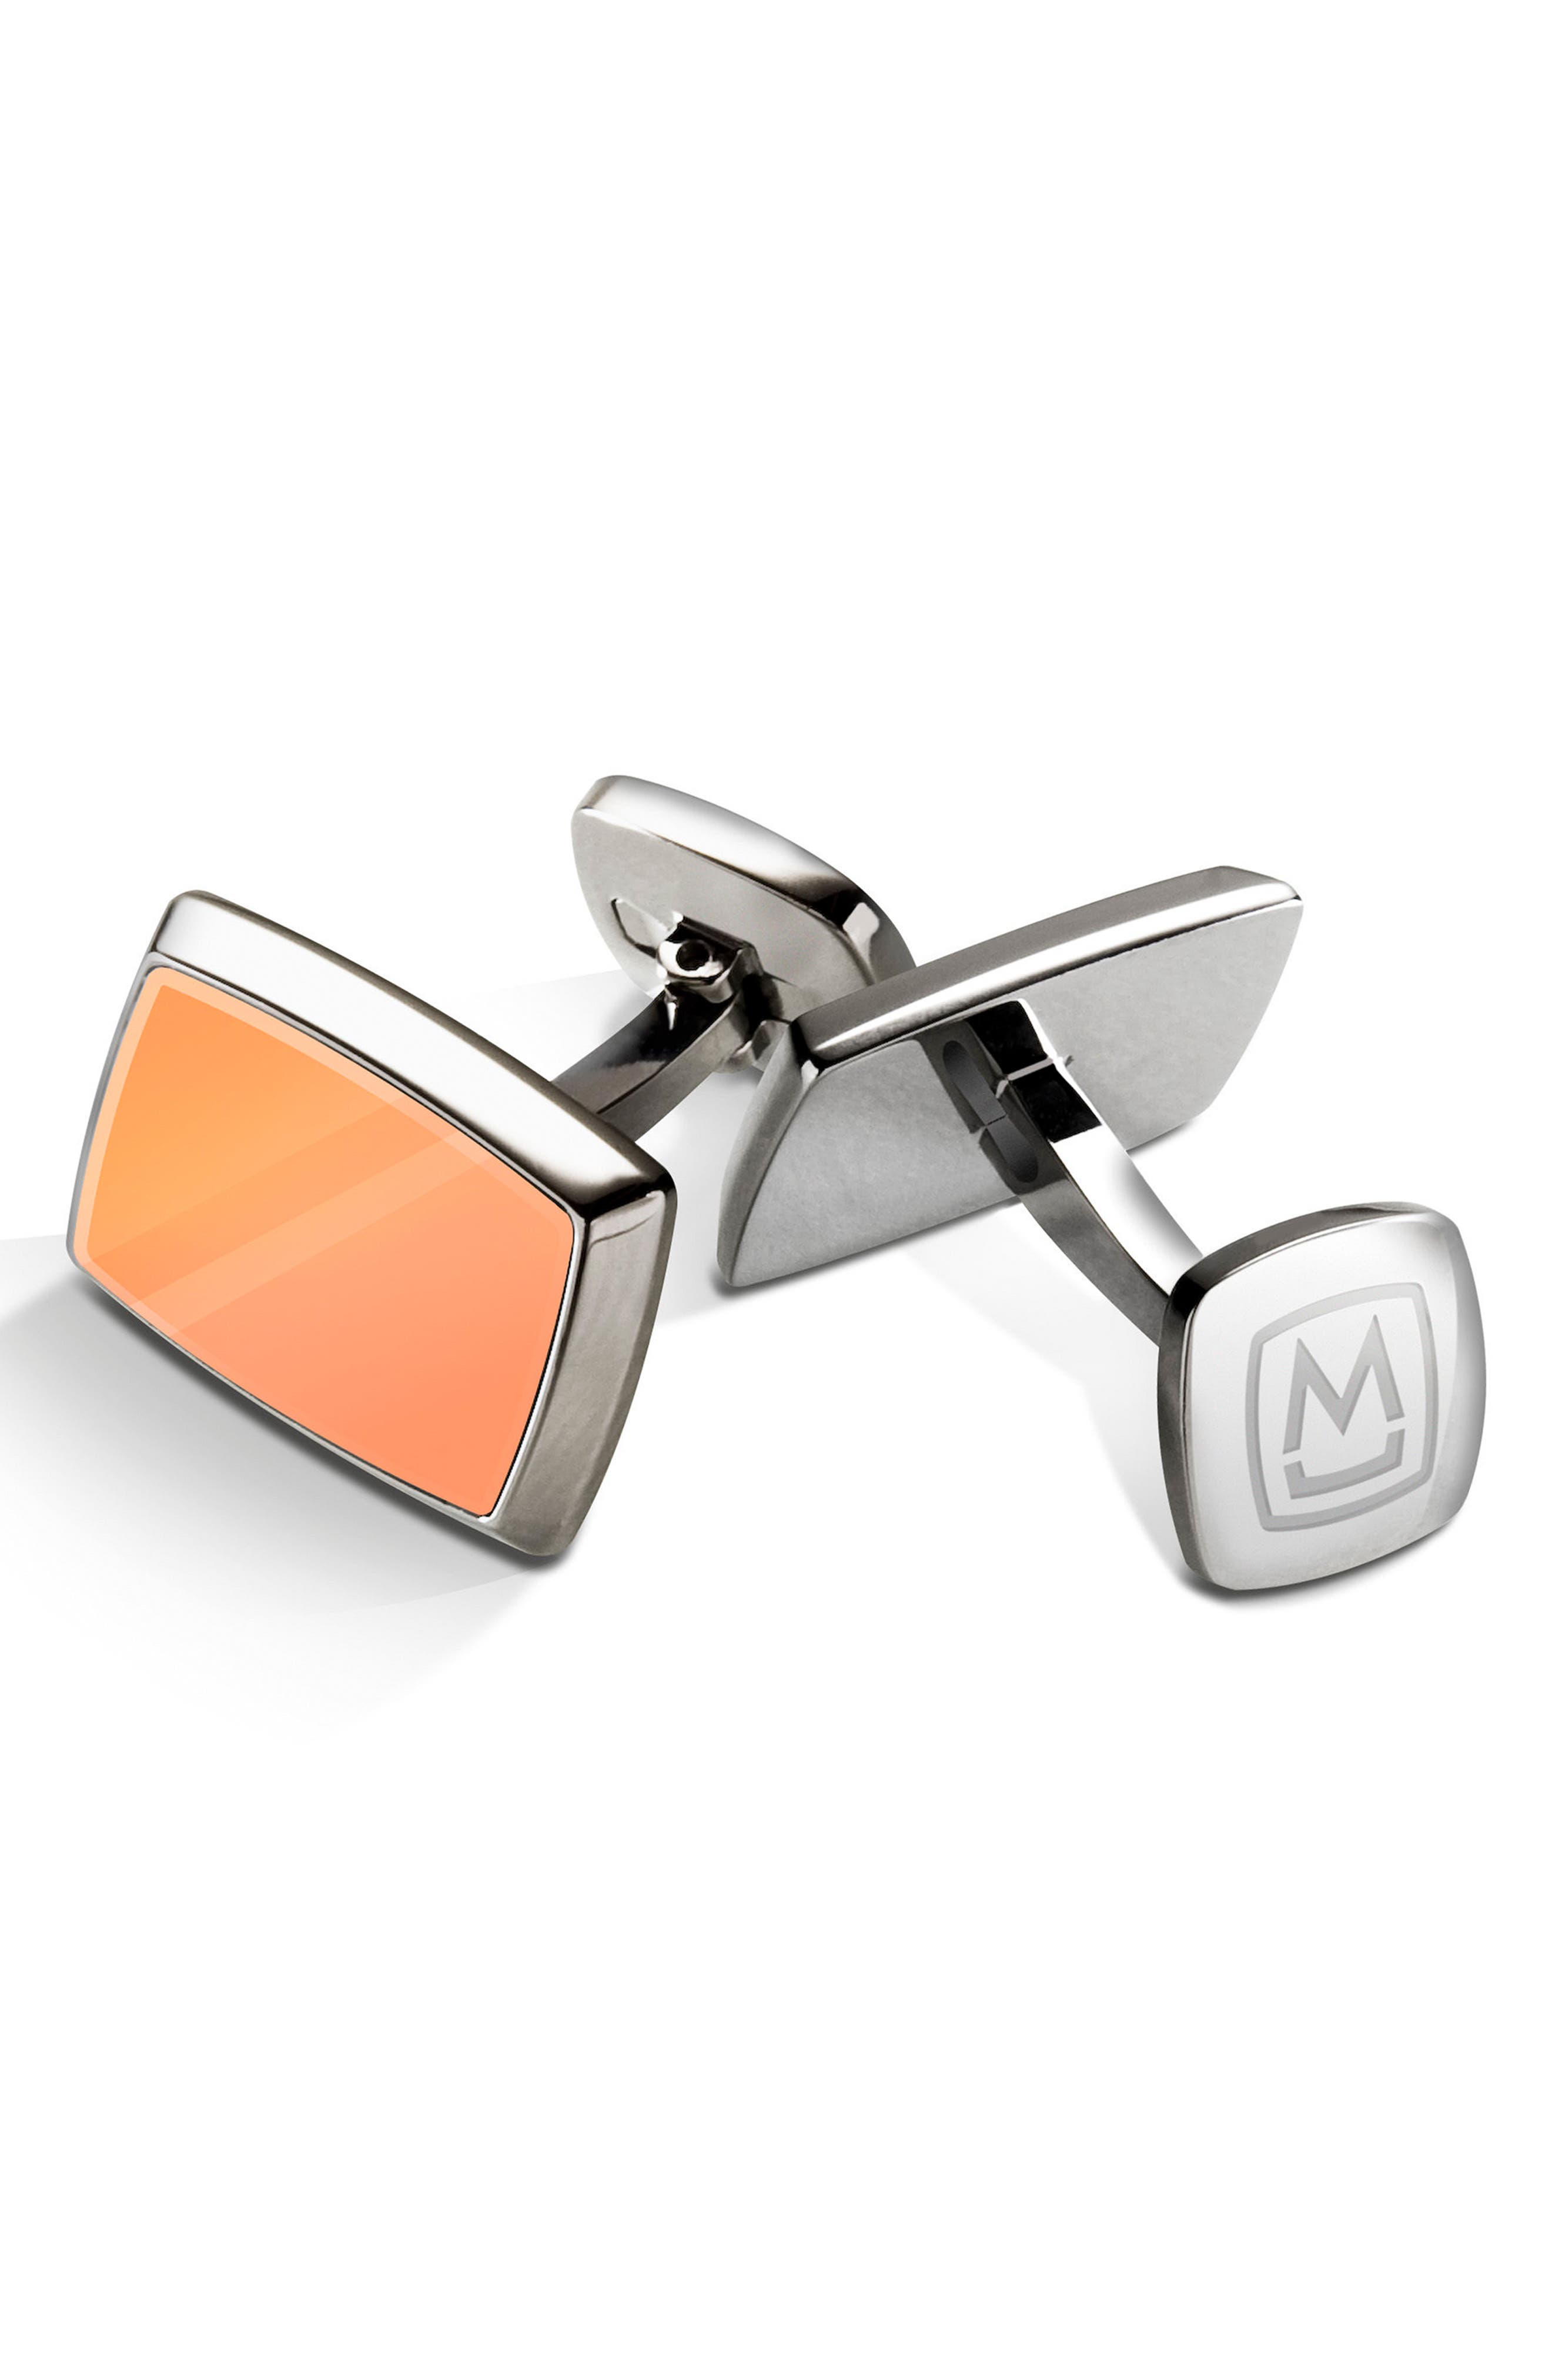 M-Clip Stainless Steel Cuff Links,                             Main thumbnail 1, color,                             650